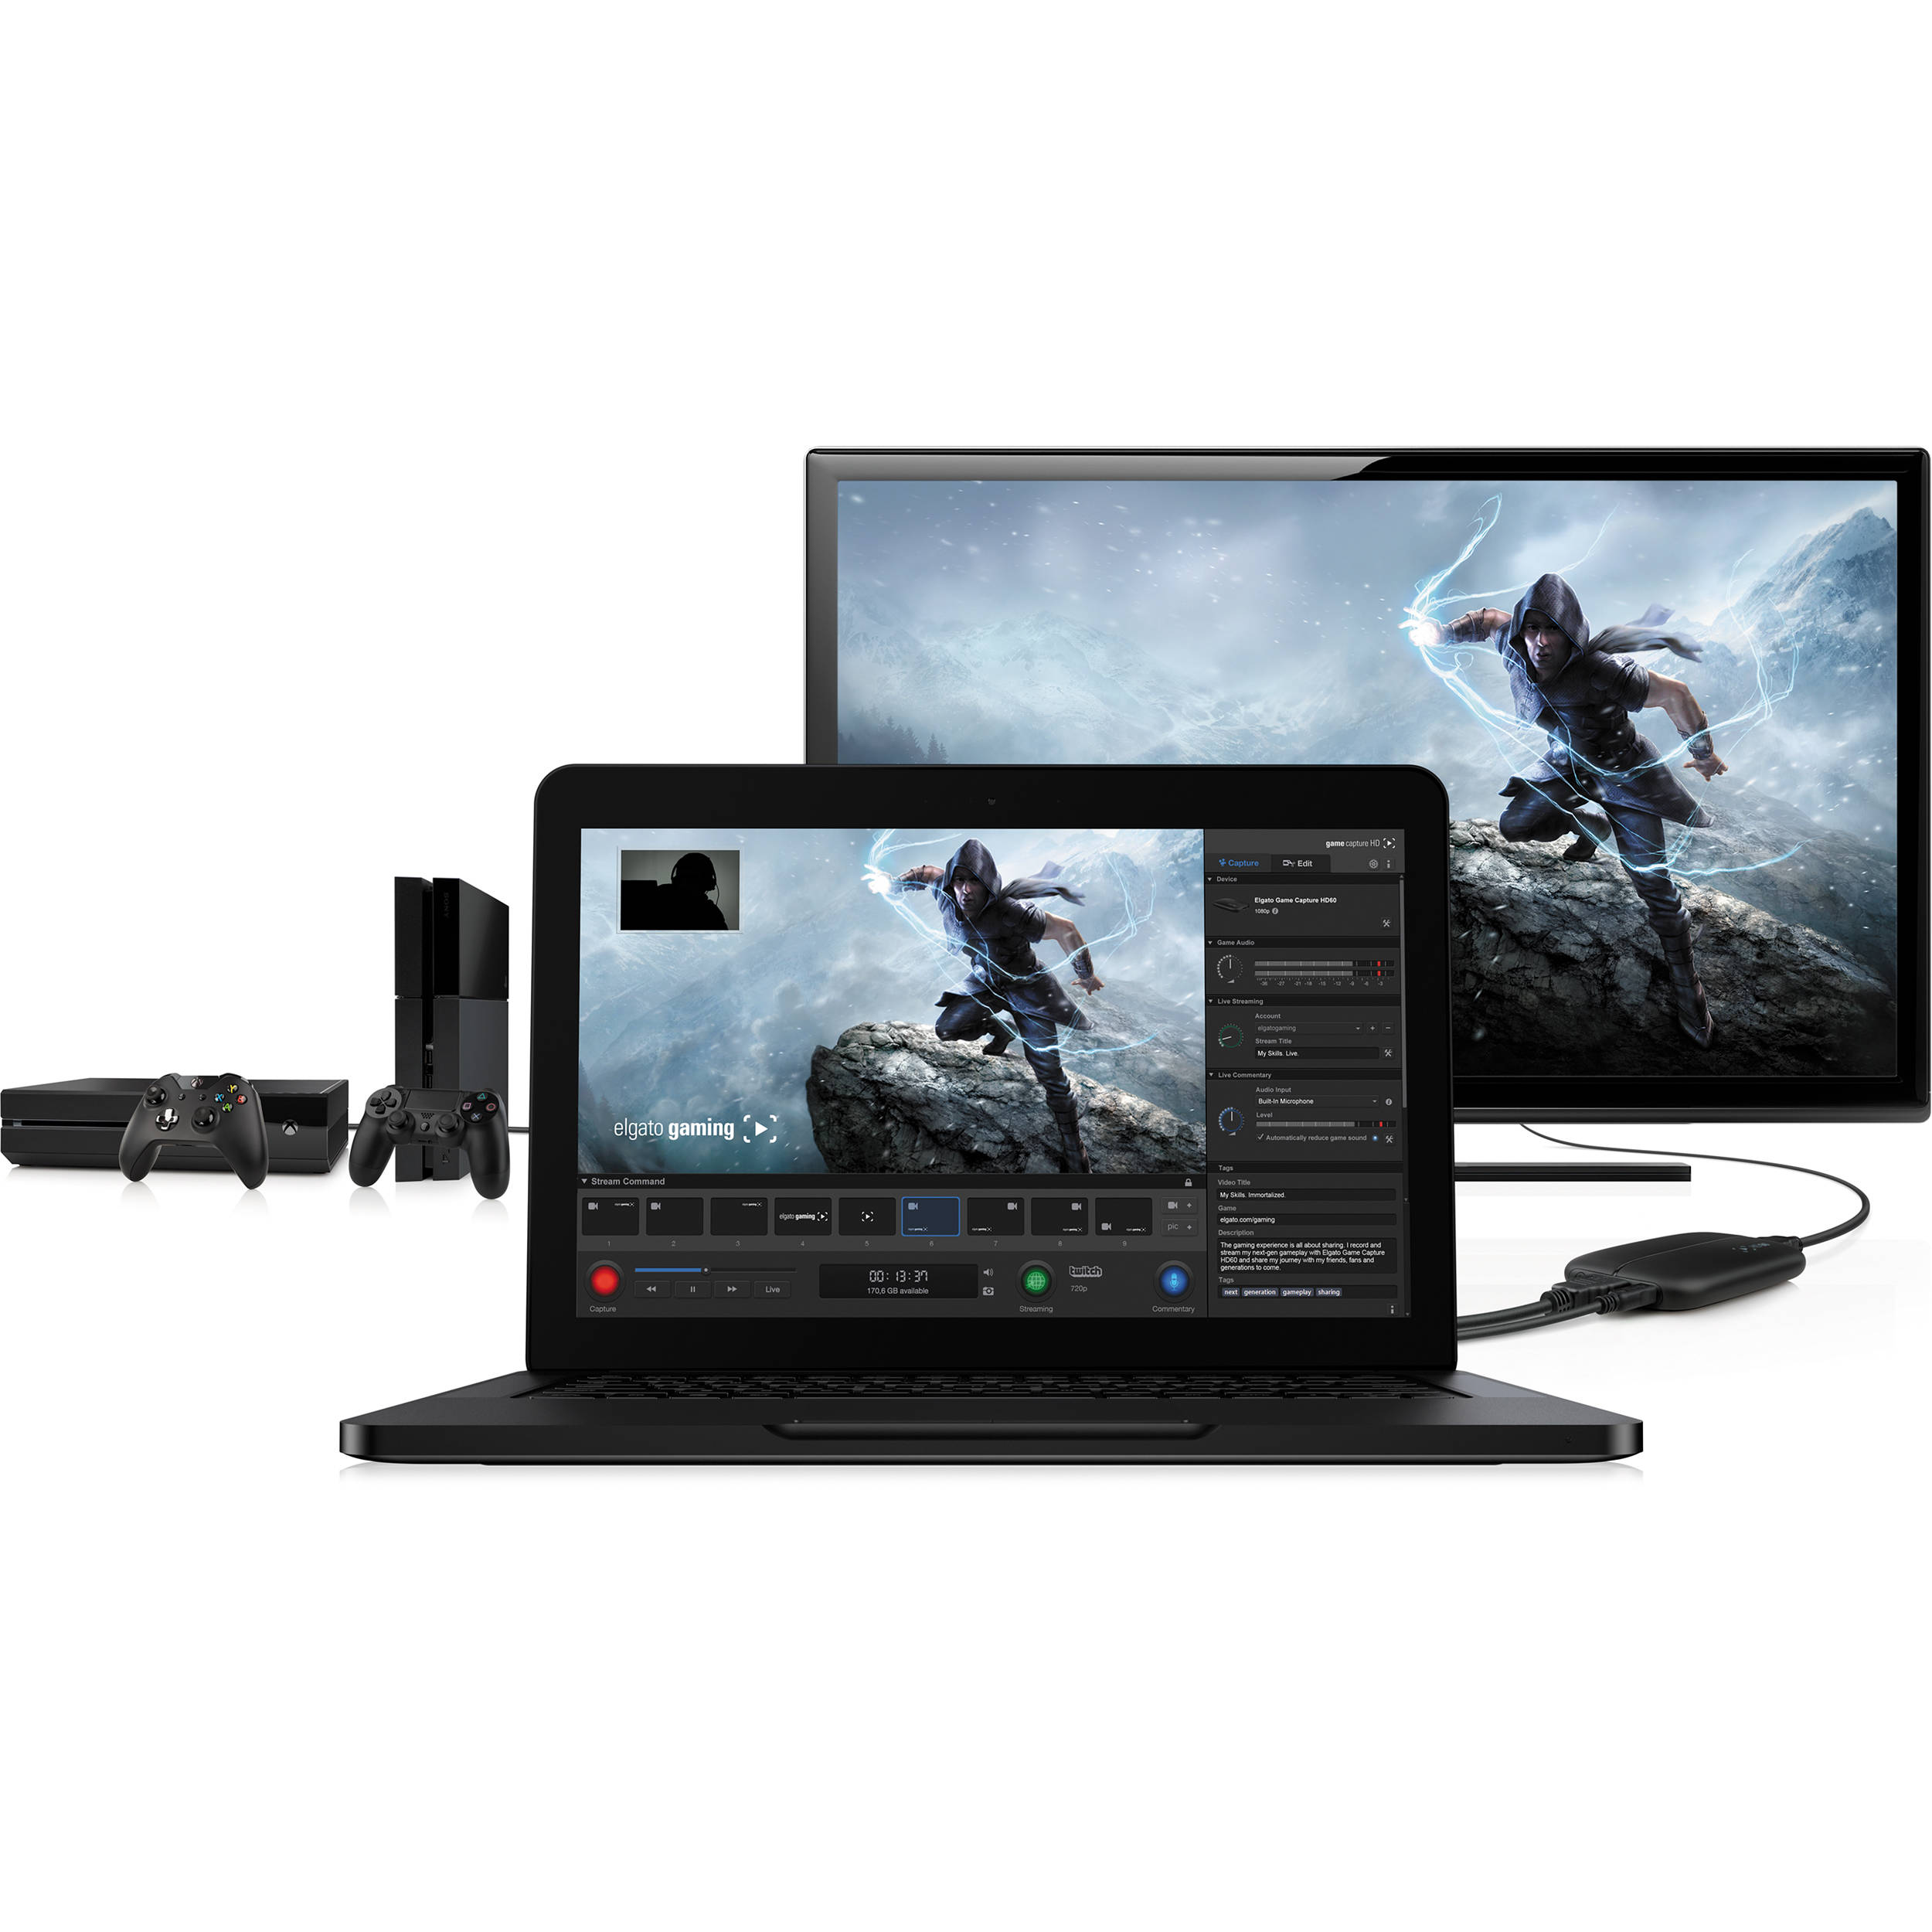 Elgato Game Capture HD60 High Definition Game Recorder